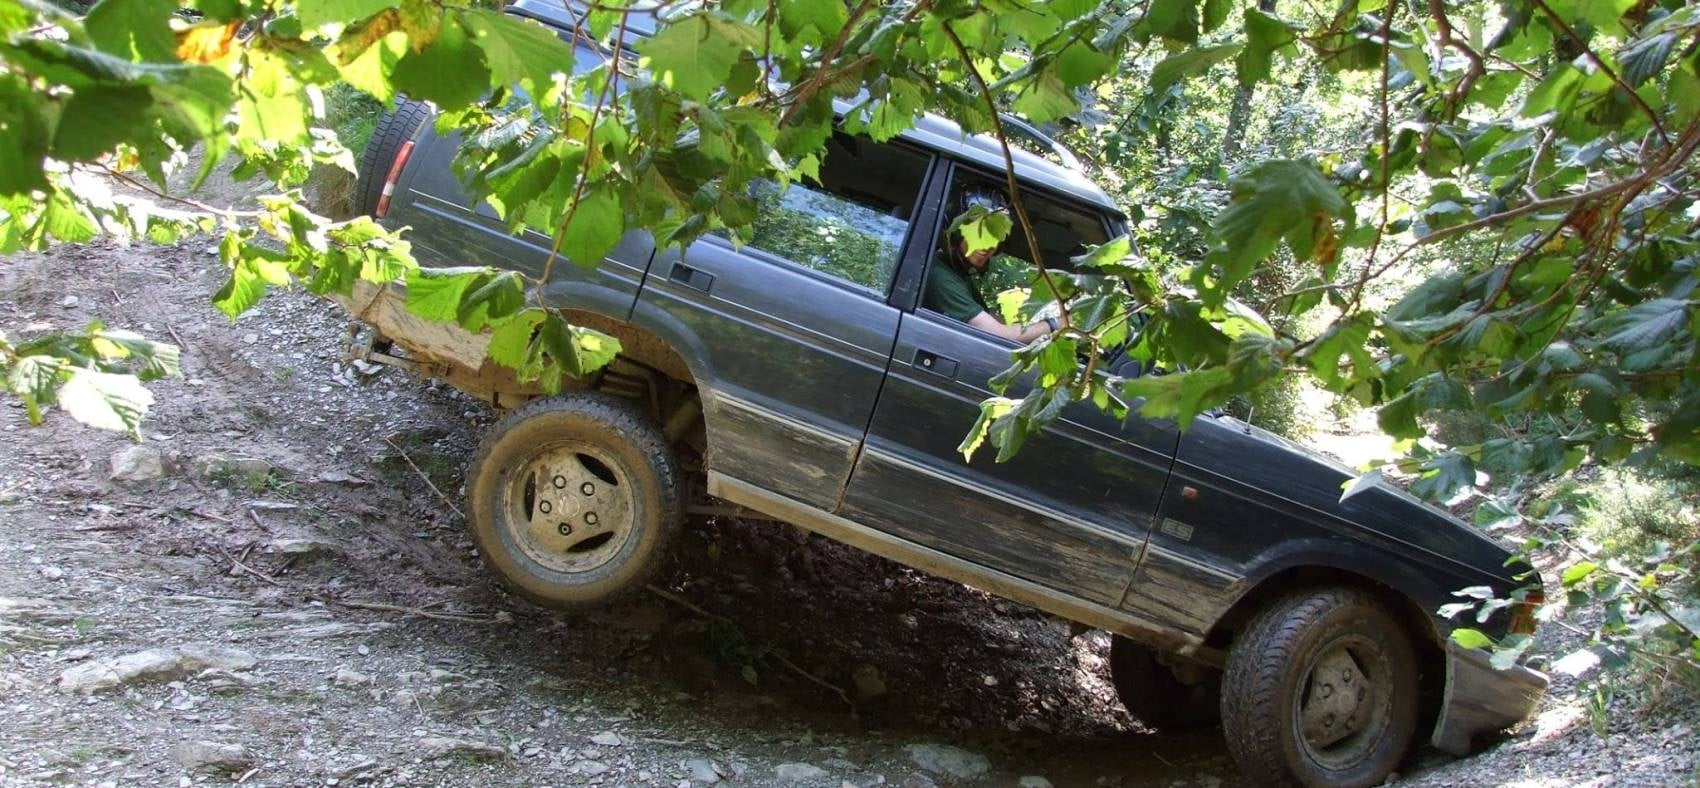 45 Minute 4x4 Driving Experience in Devon - With Passenger-4